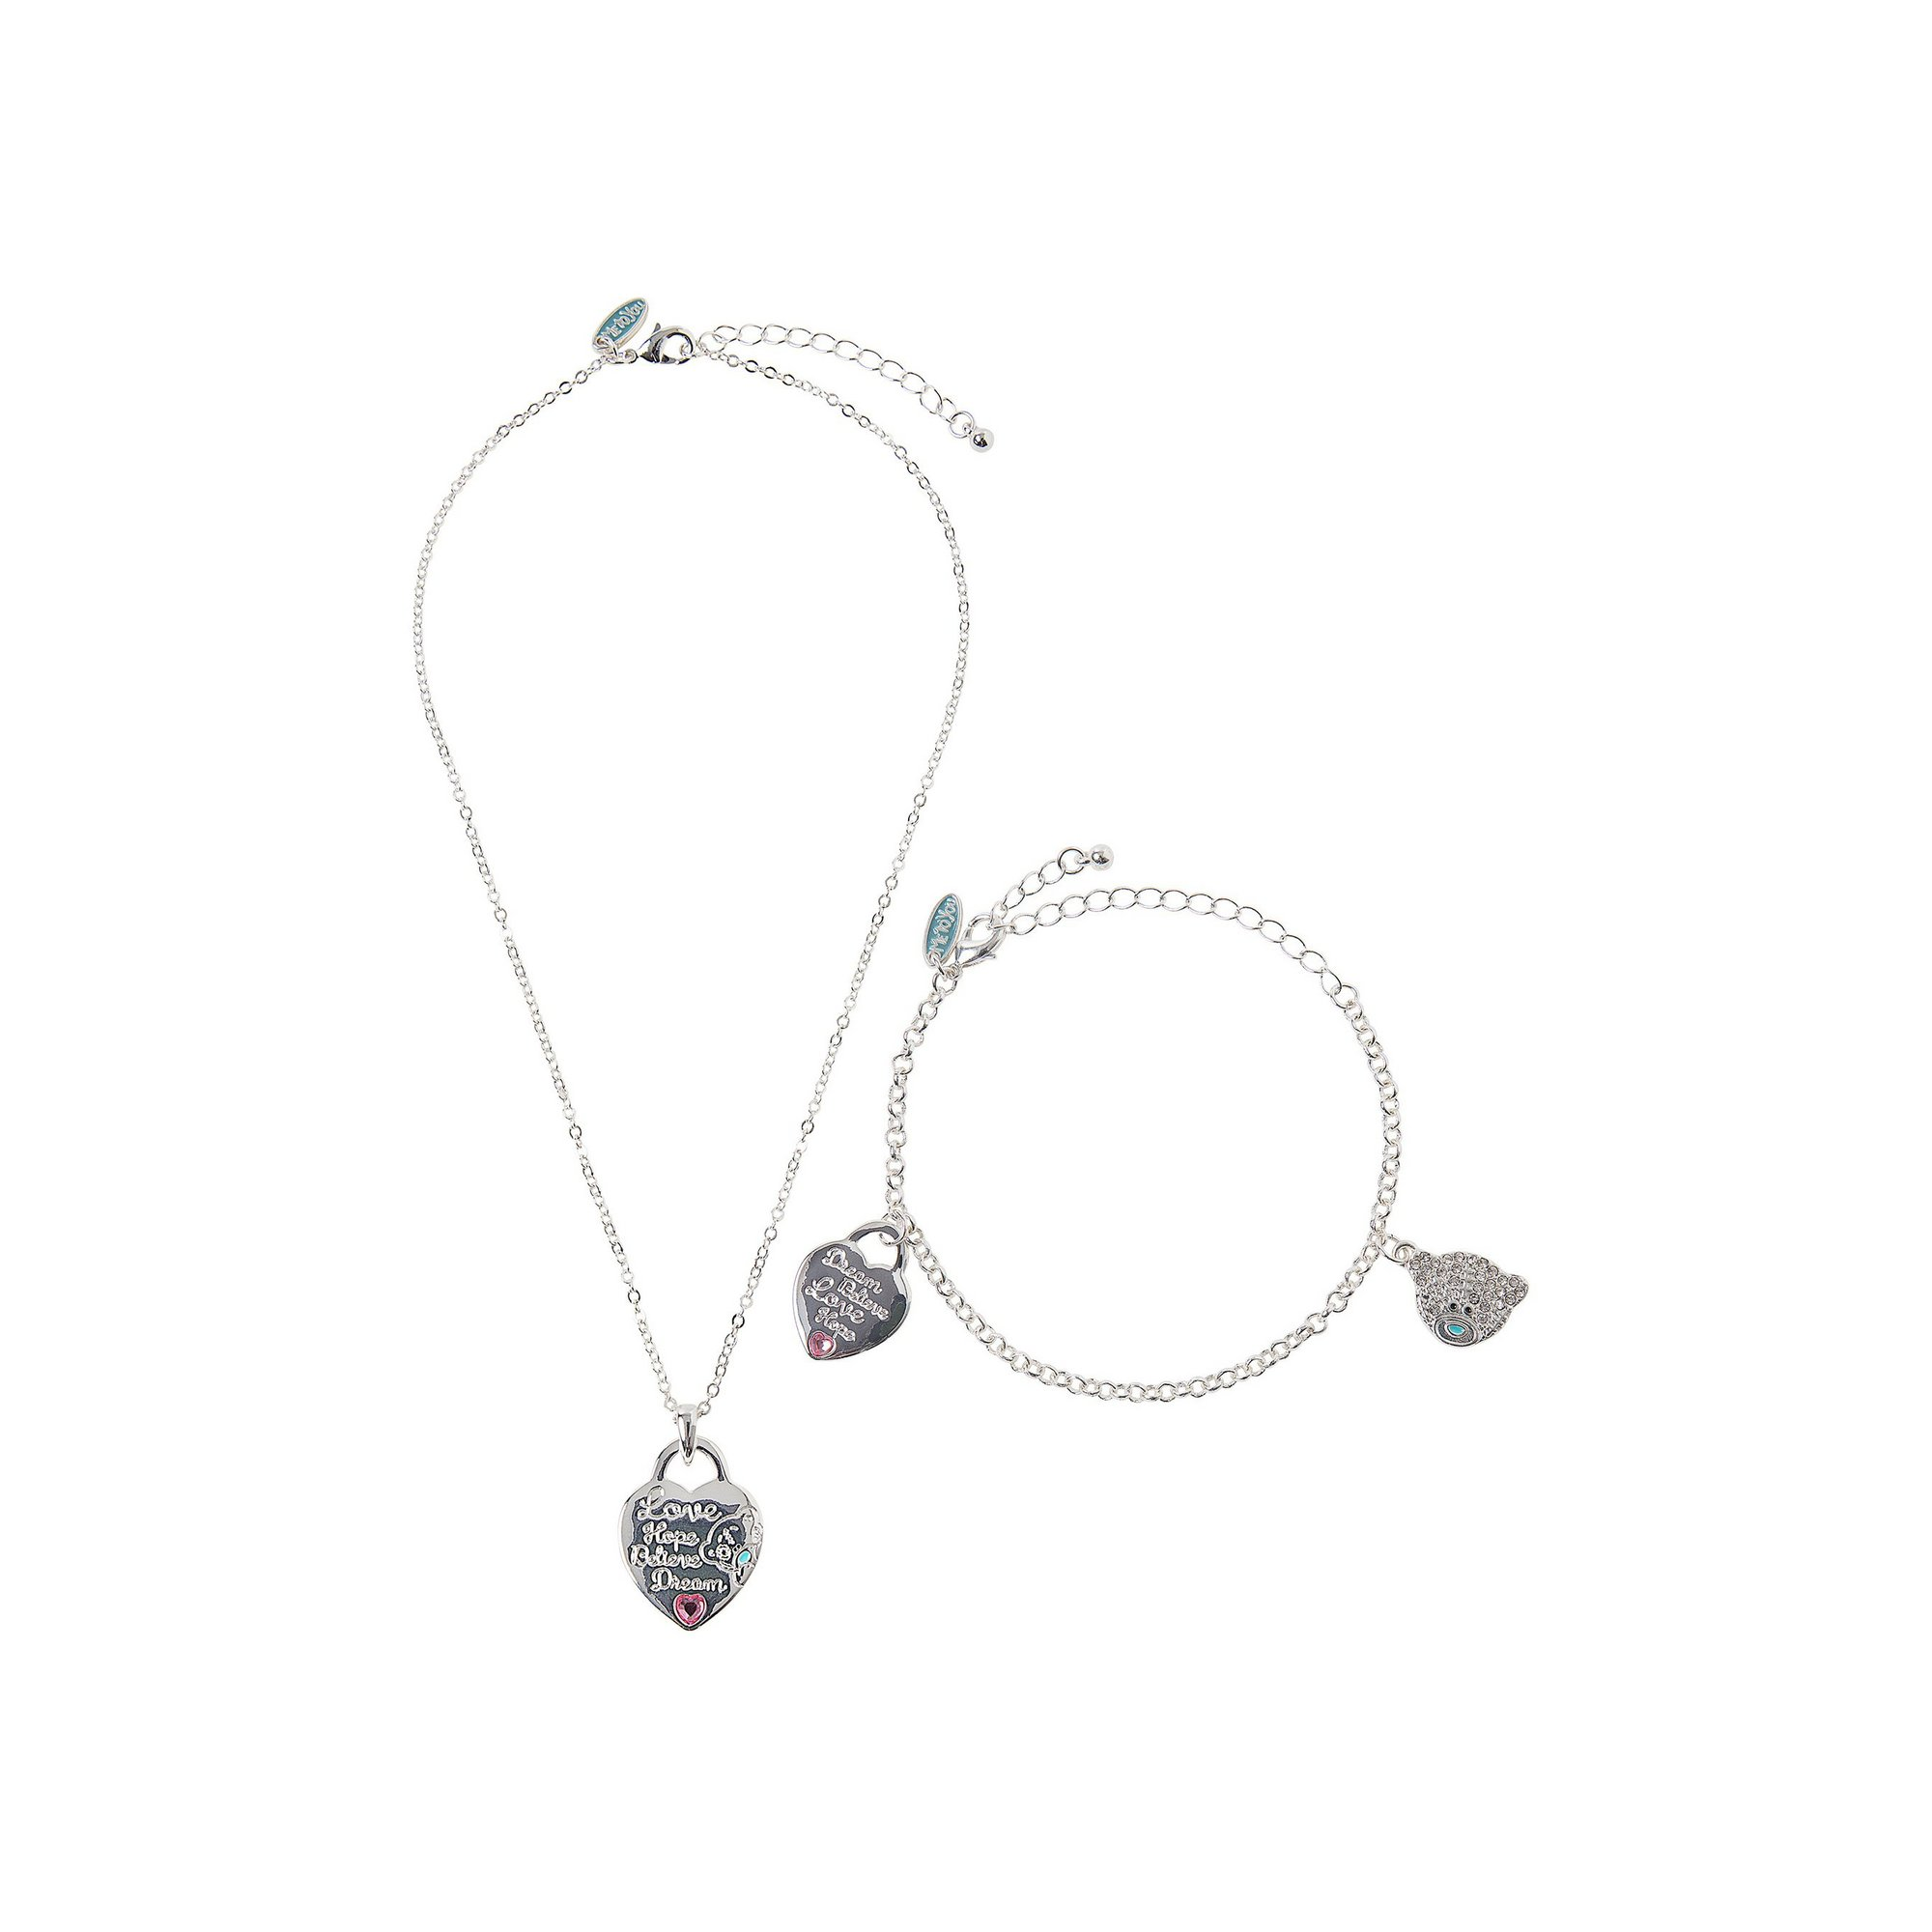 Image of Me To You Heart Bracelet and Pendant Set